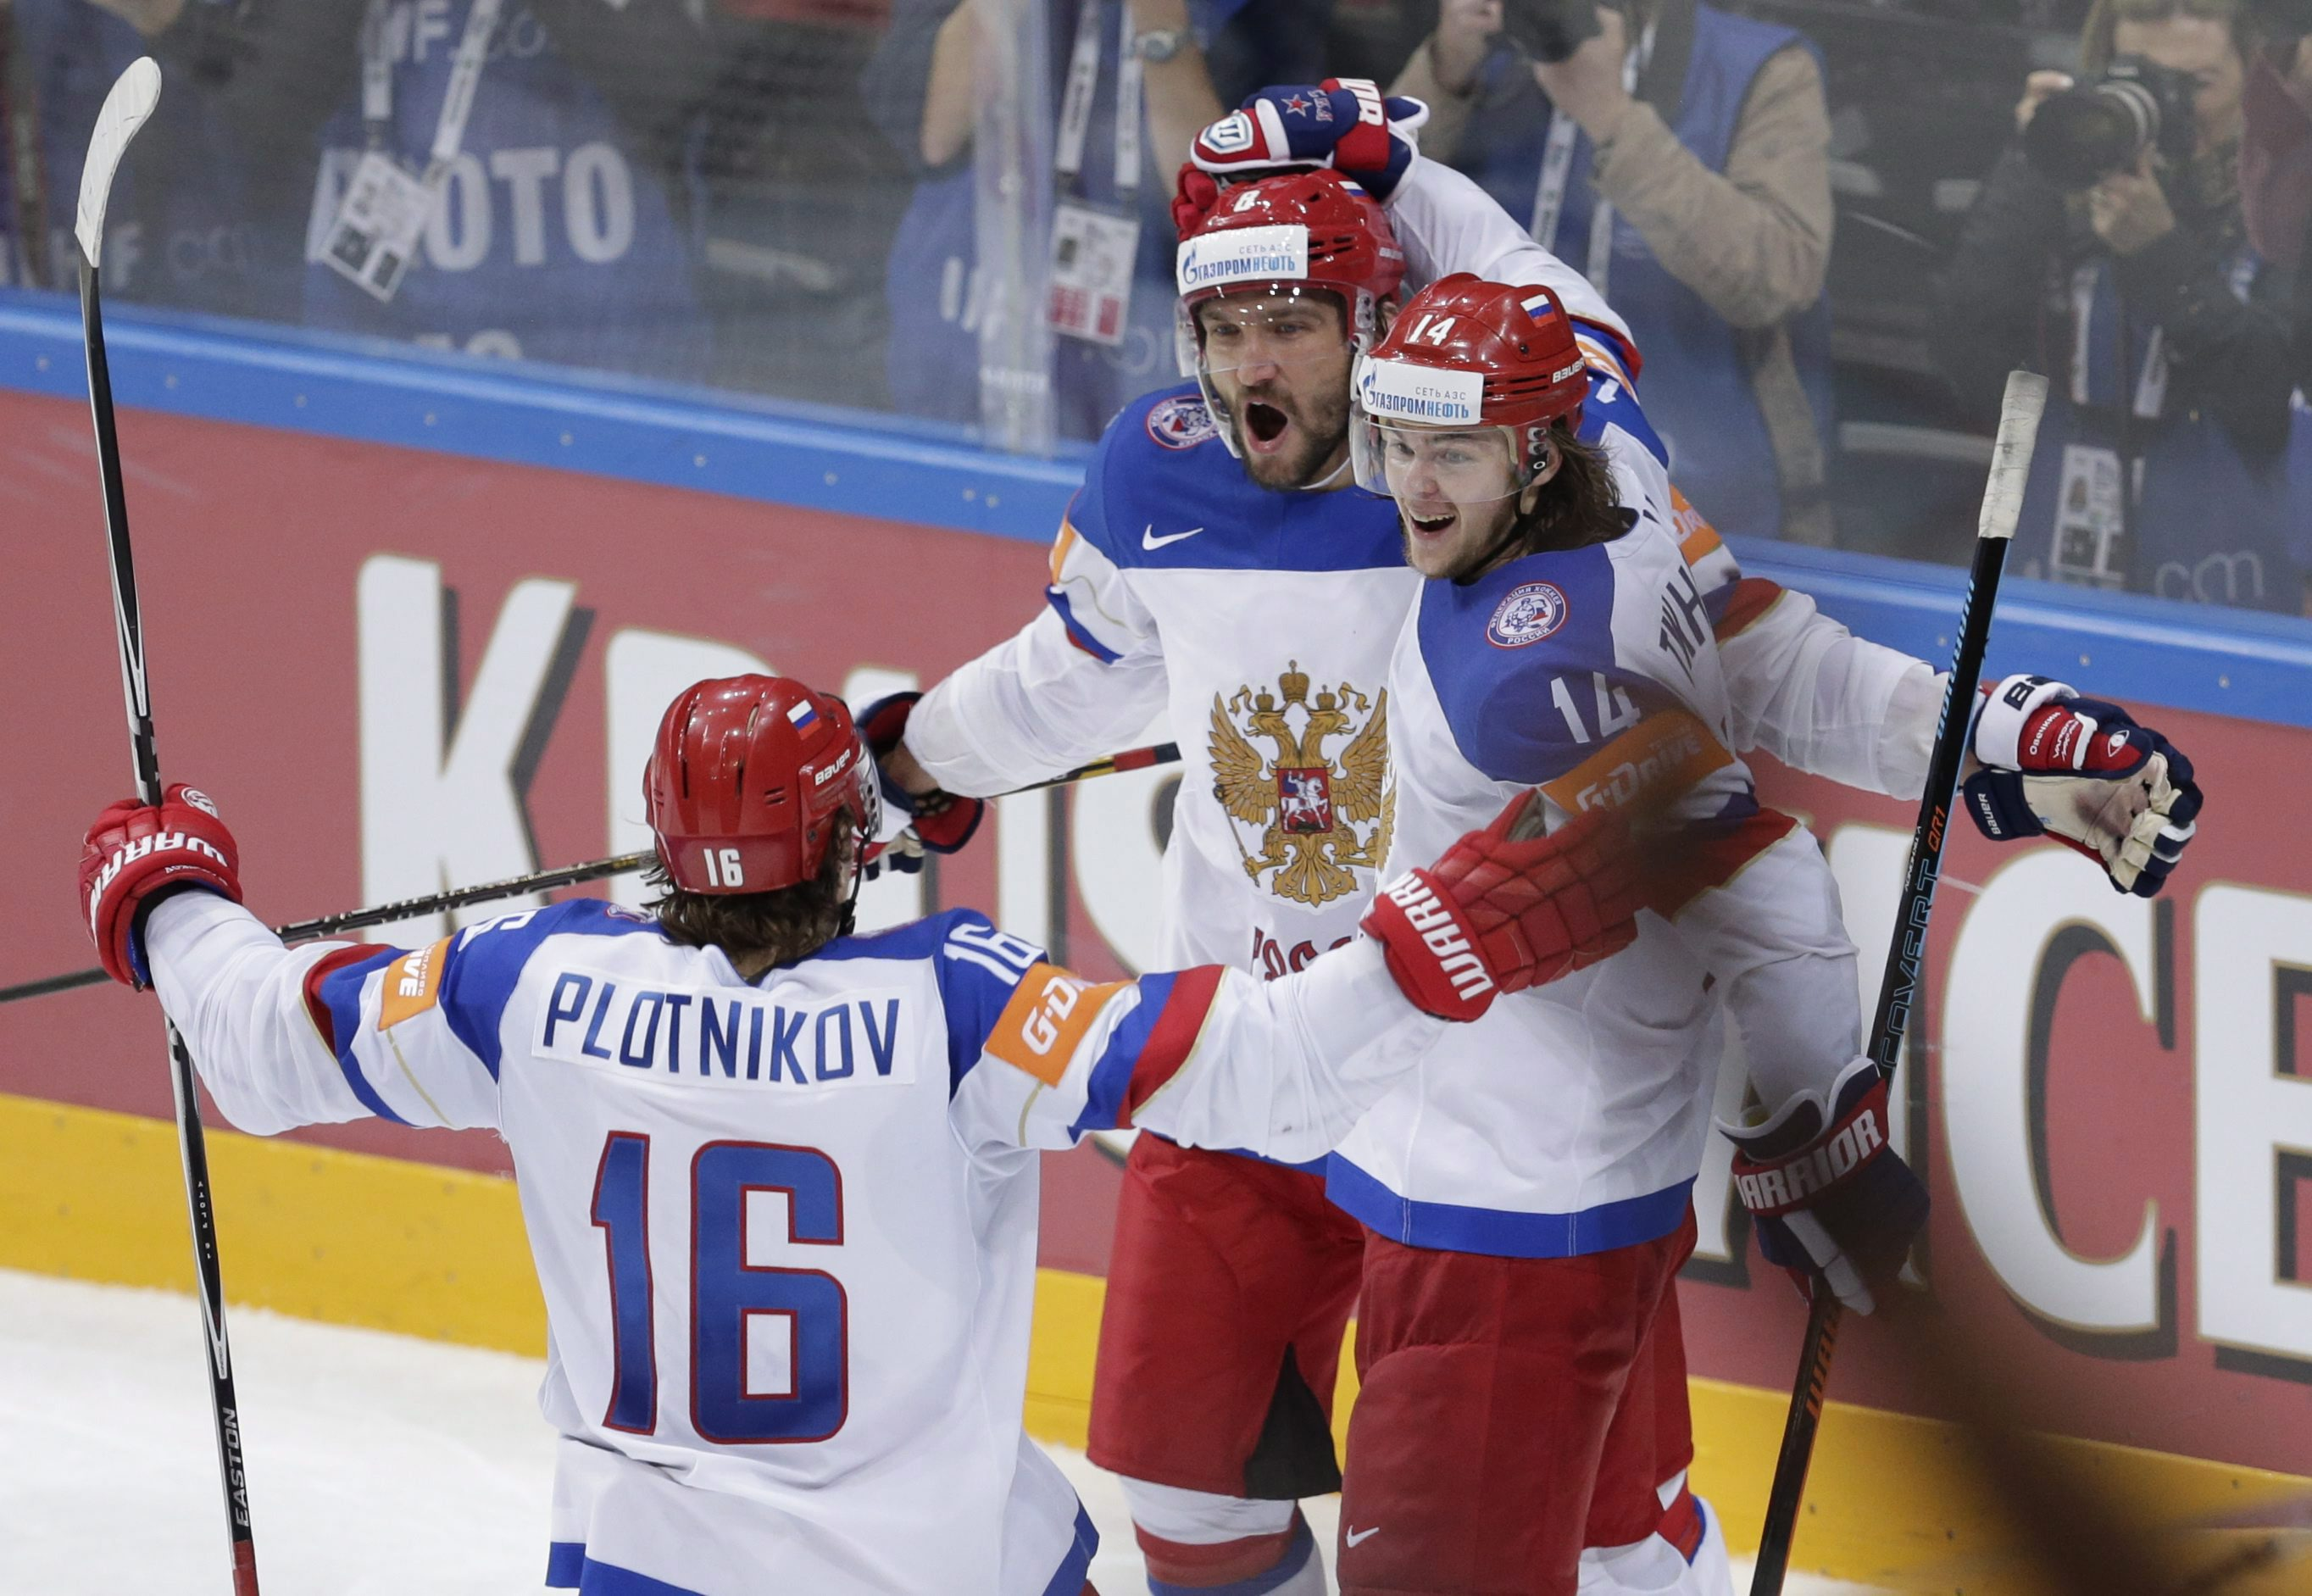 f4c34503745 Team Russia names preliminary World Cup of Hockey roster - Sportsnet.ca